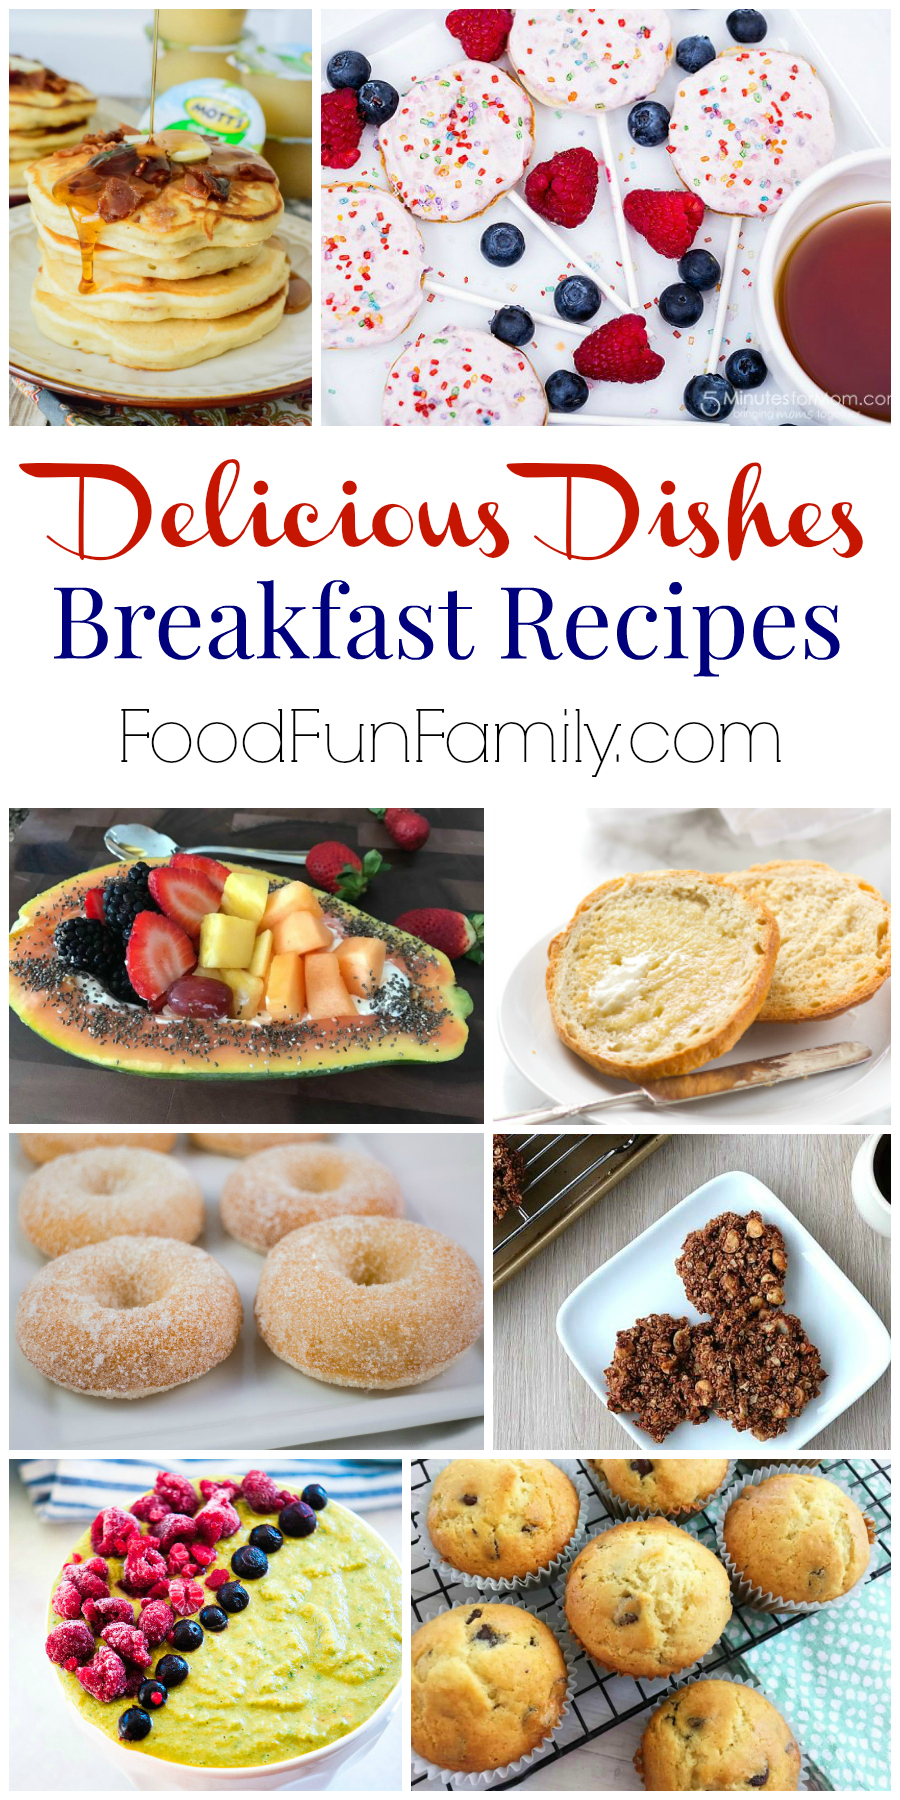 Delicious Dishes breakfast recipe collection from Food Fun Family